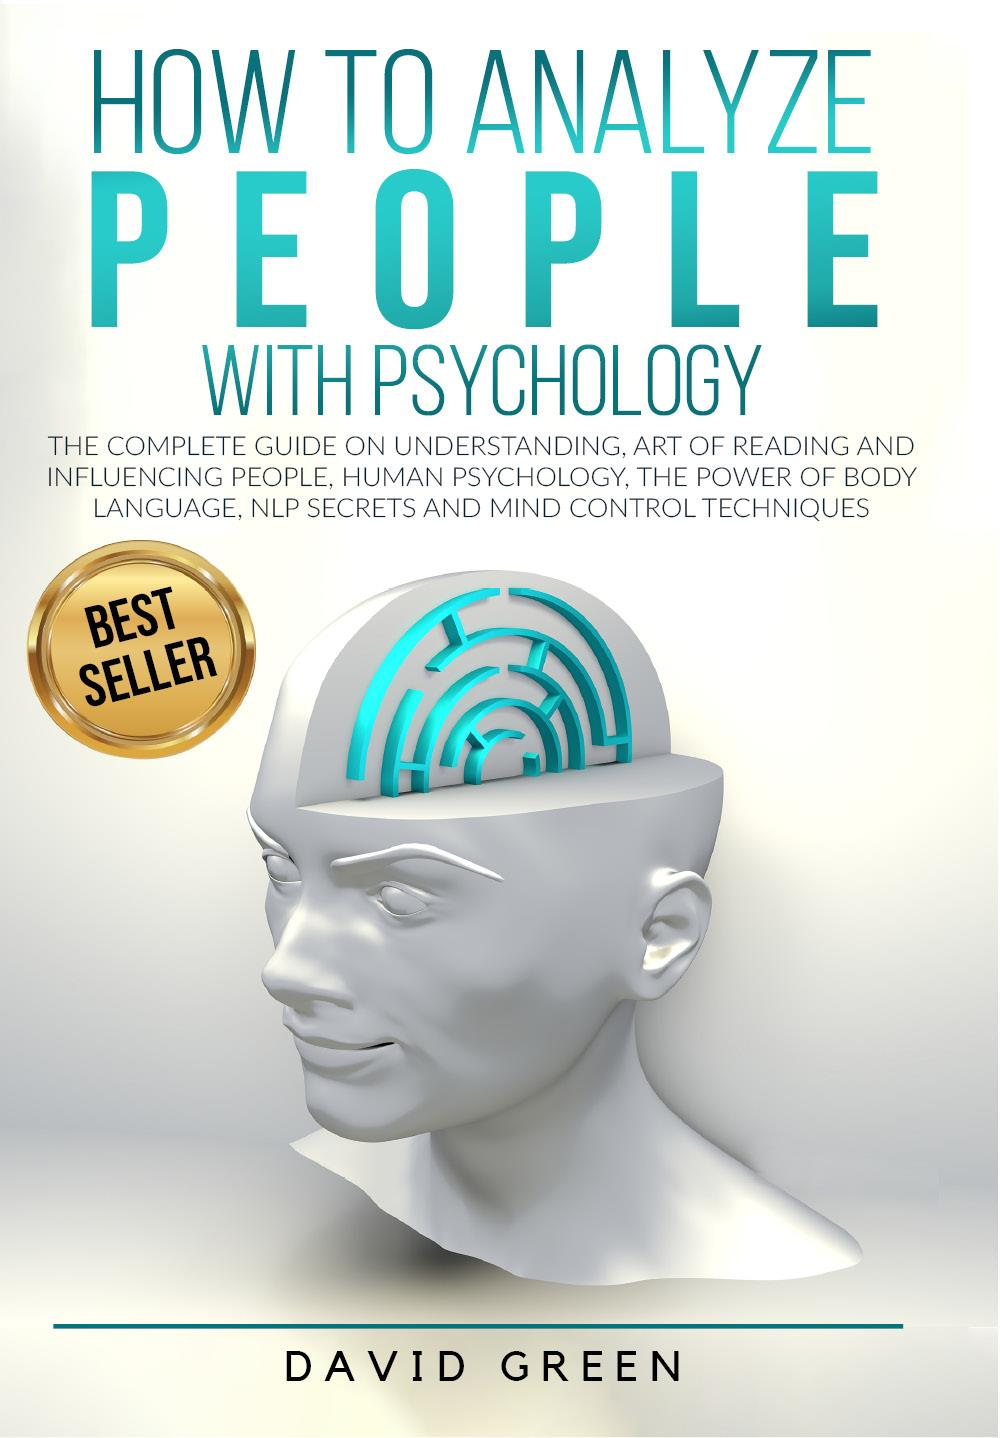 How to analyze people with psychology